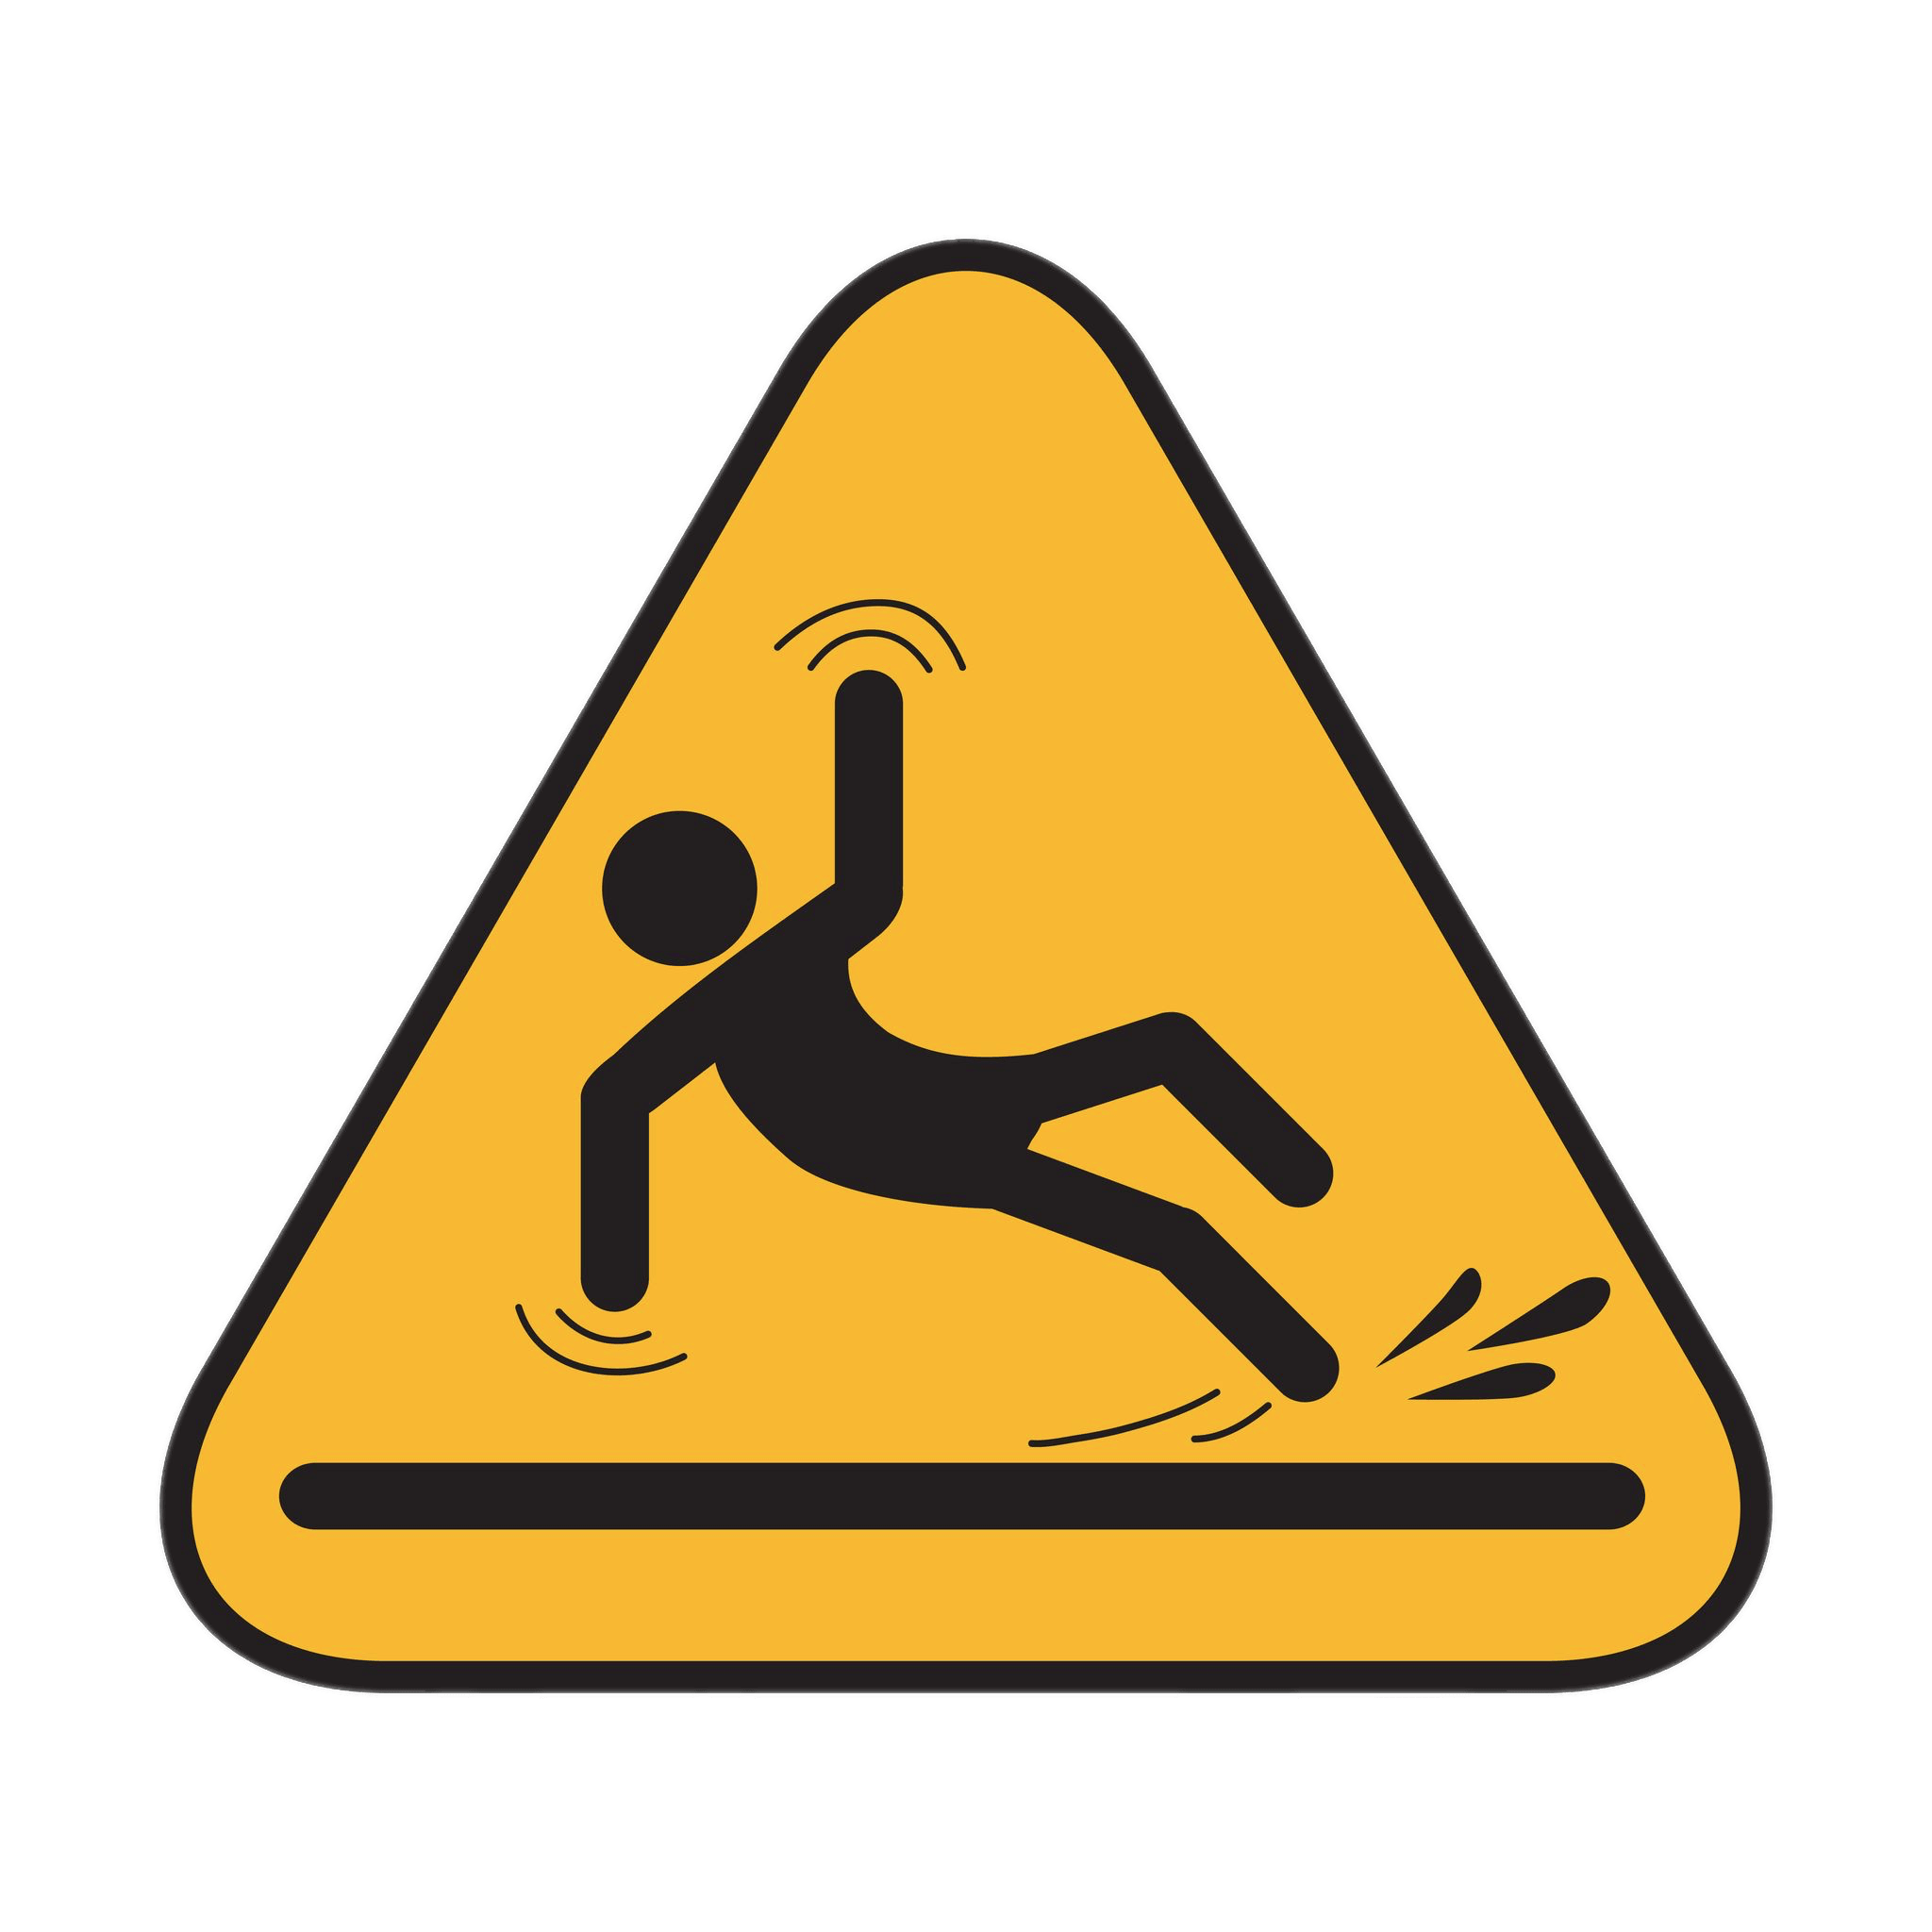 slip and fall clip art free - photo #32